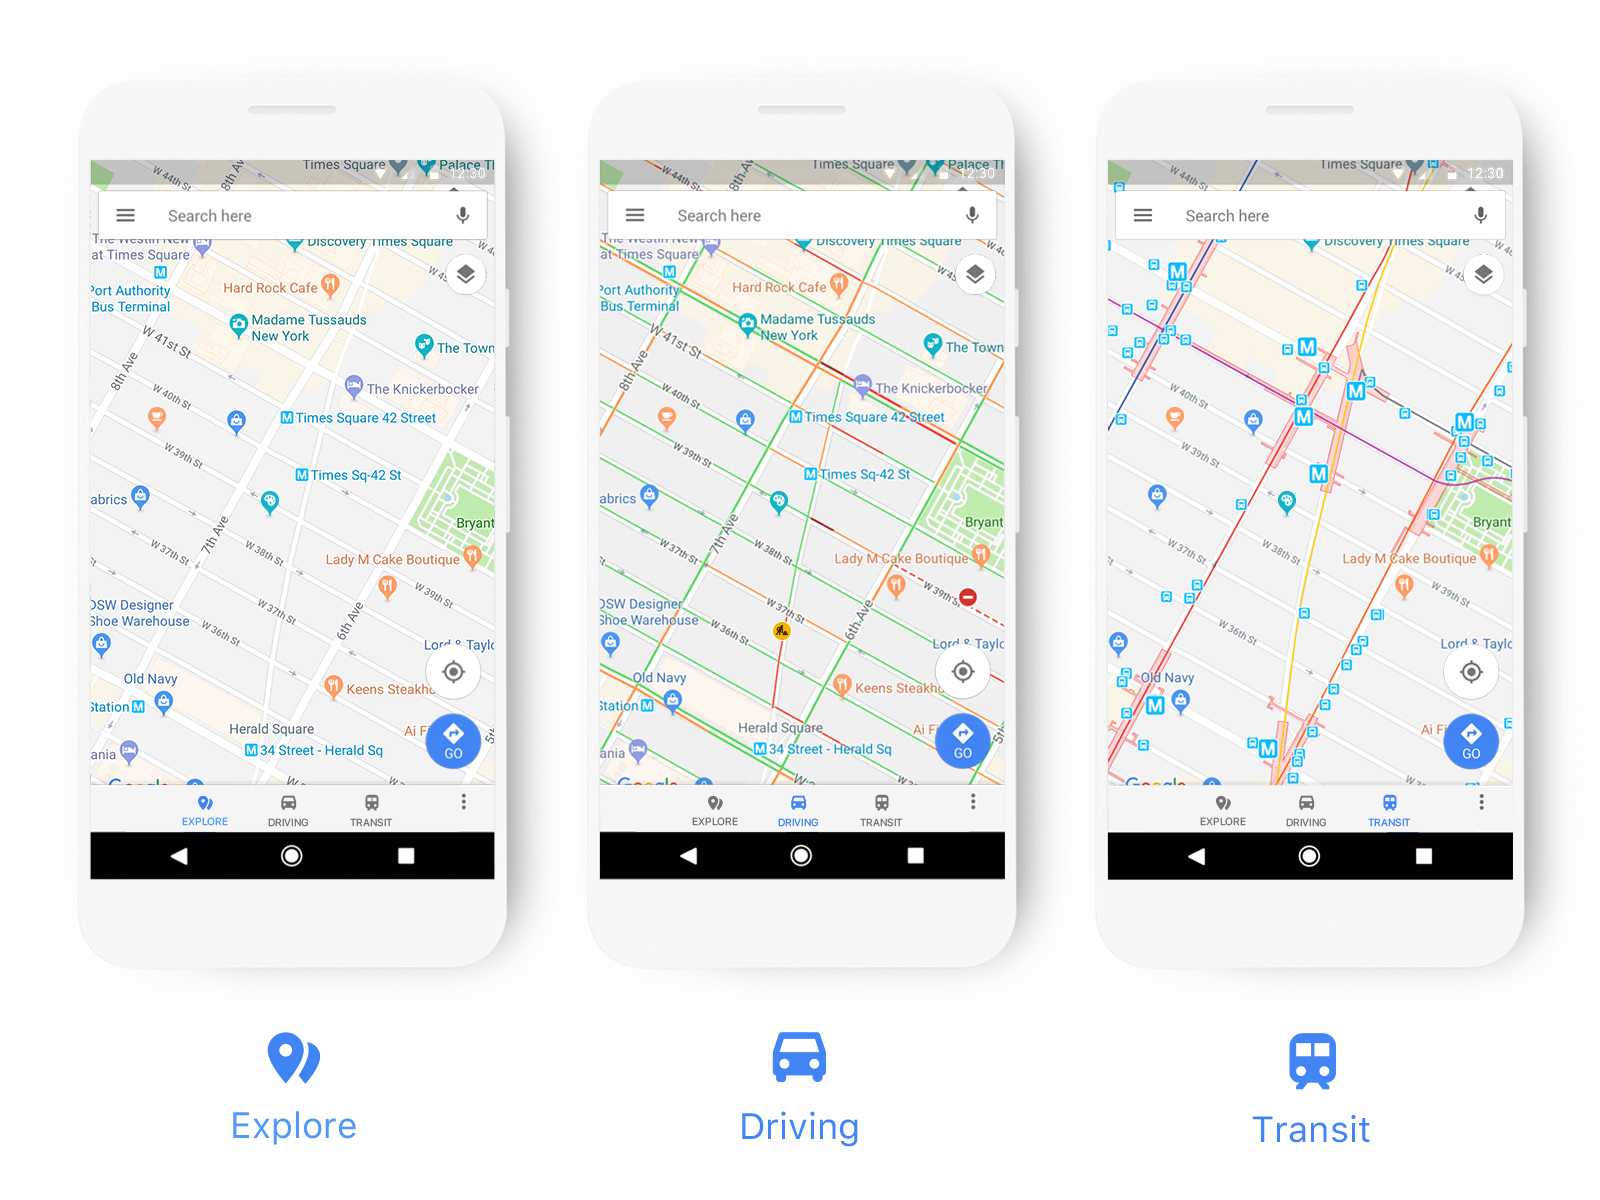 Google Maps gets a new design for highlighting relevant information to users